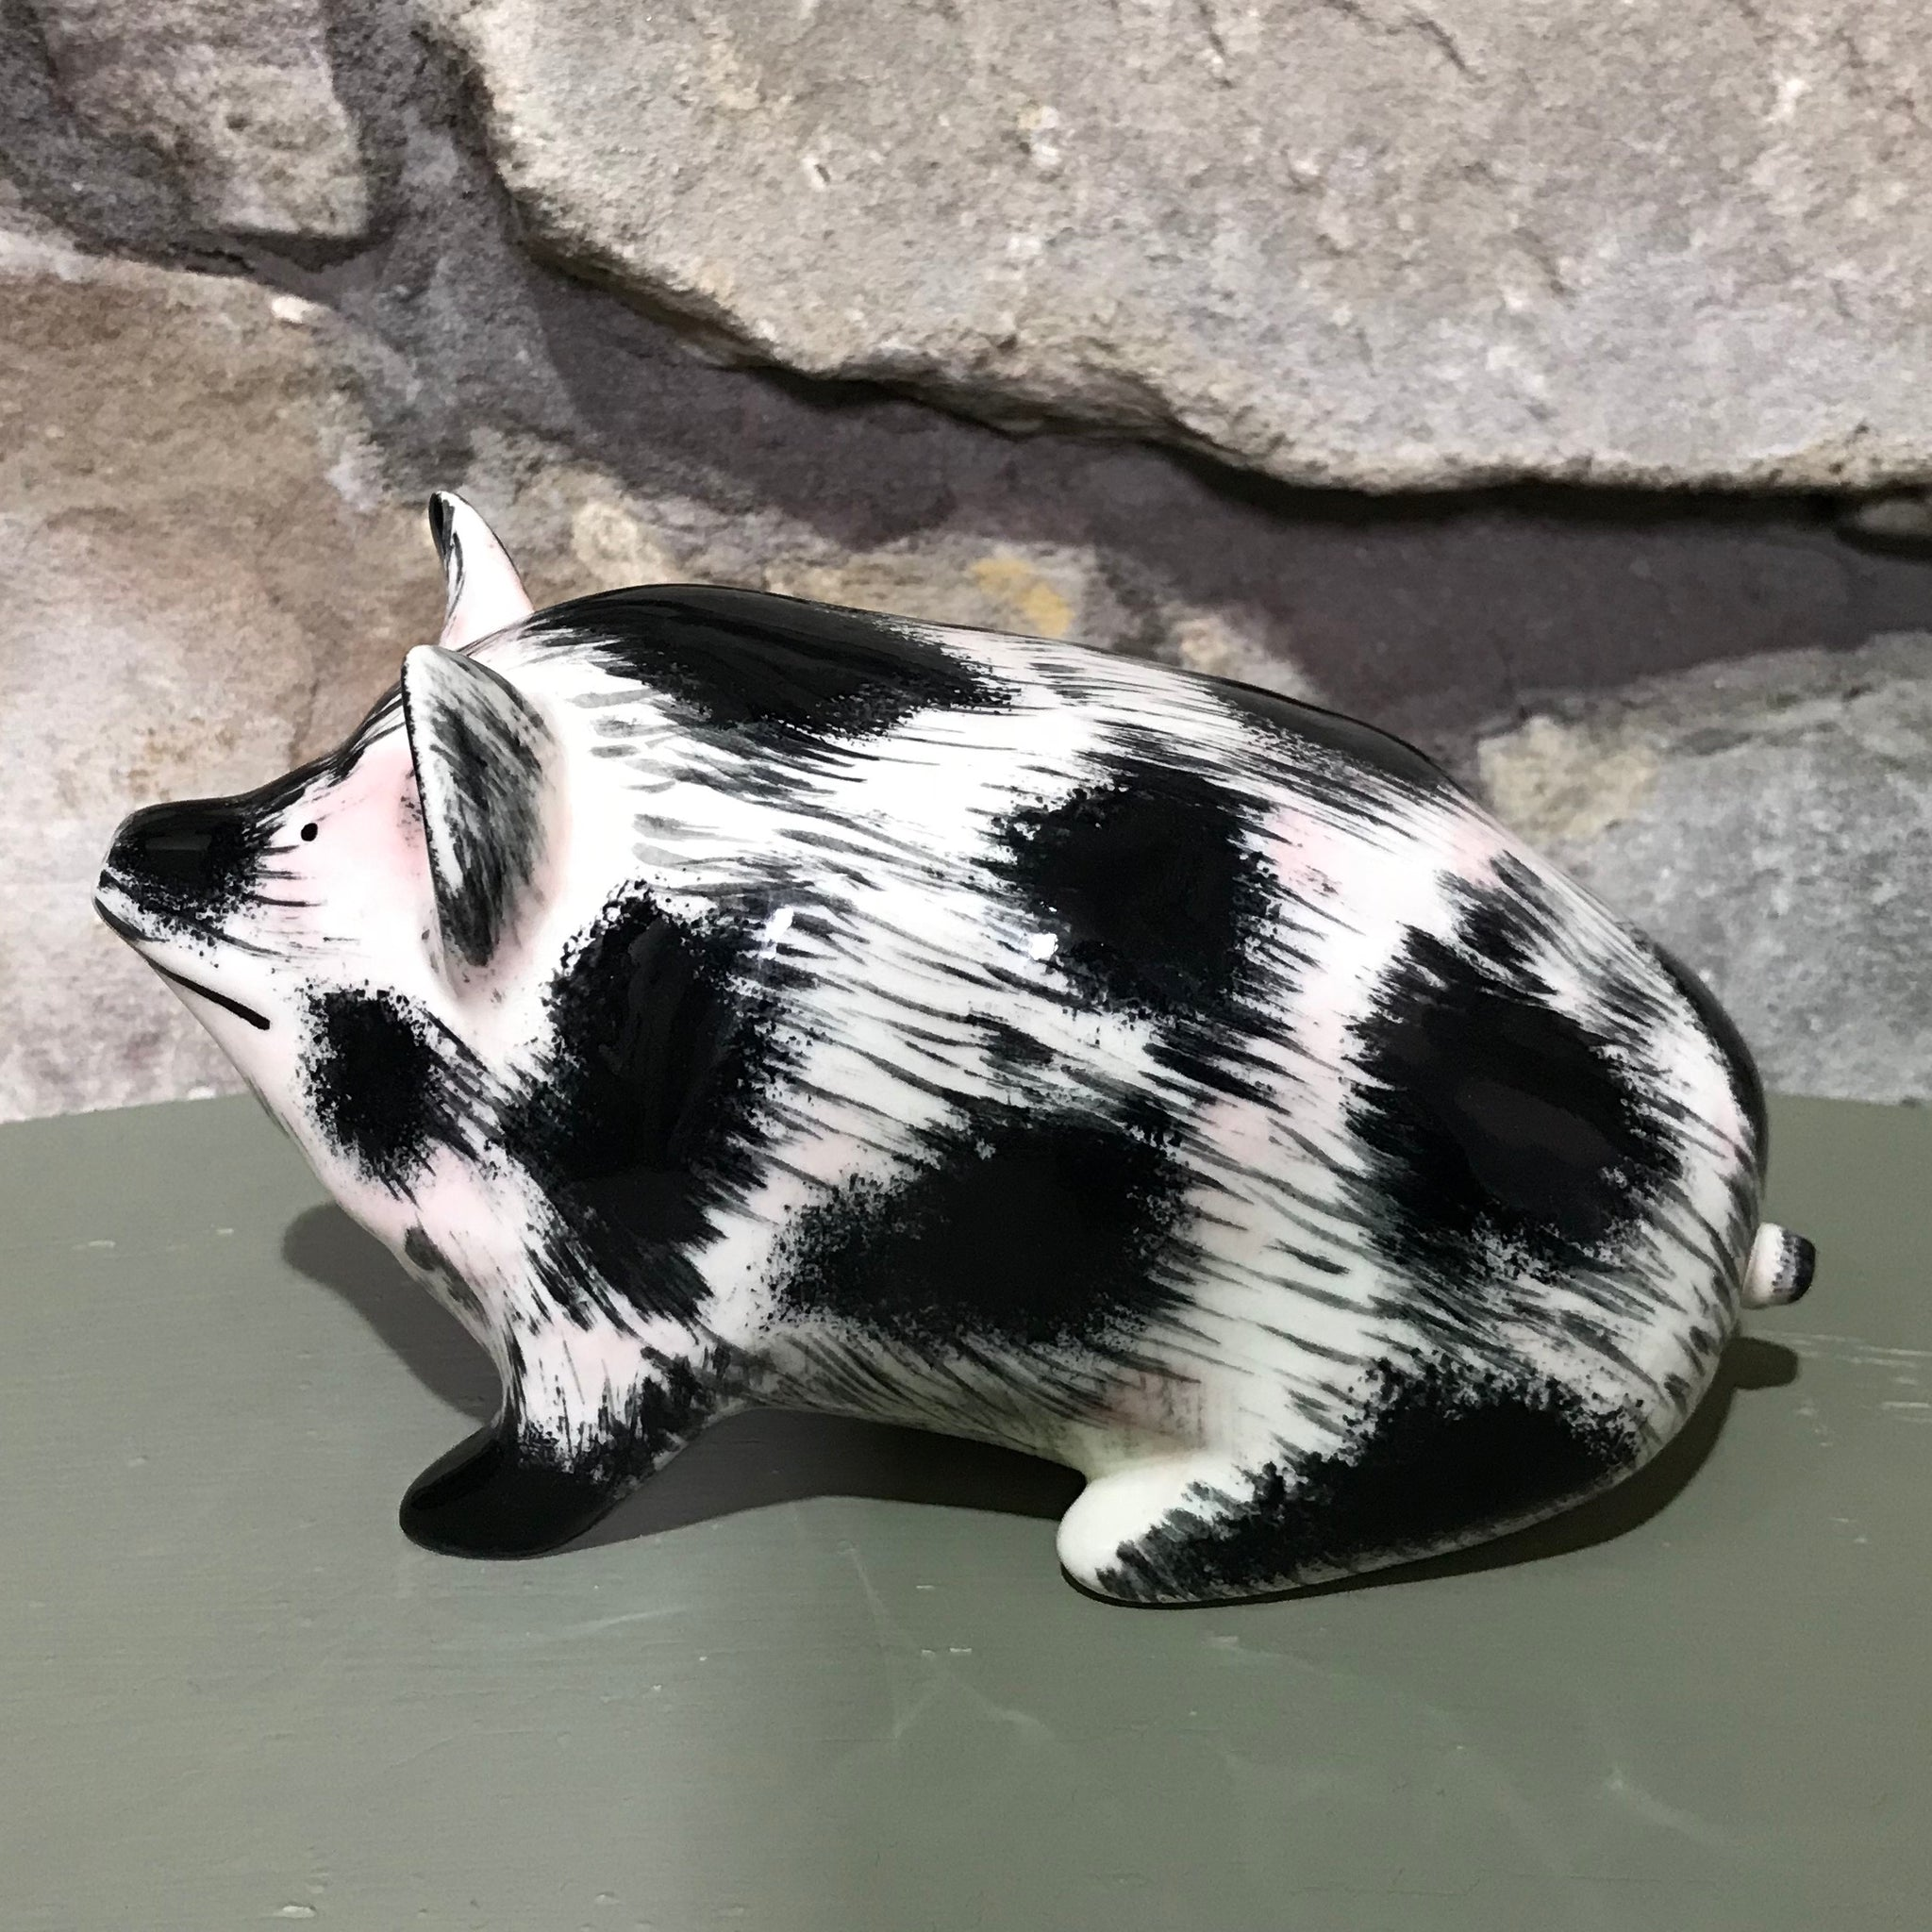 'Dirty' Black and White Small Pig